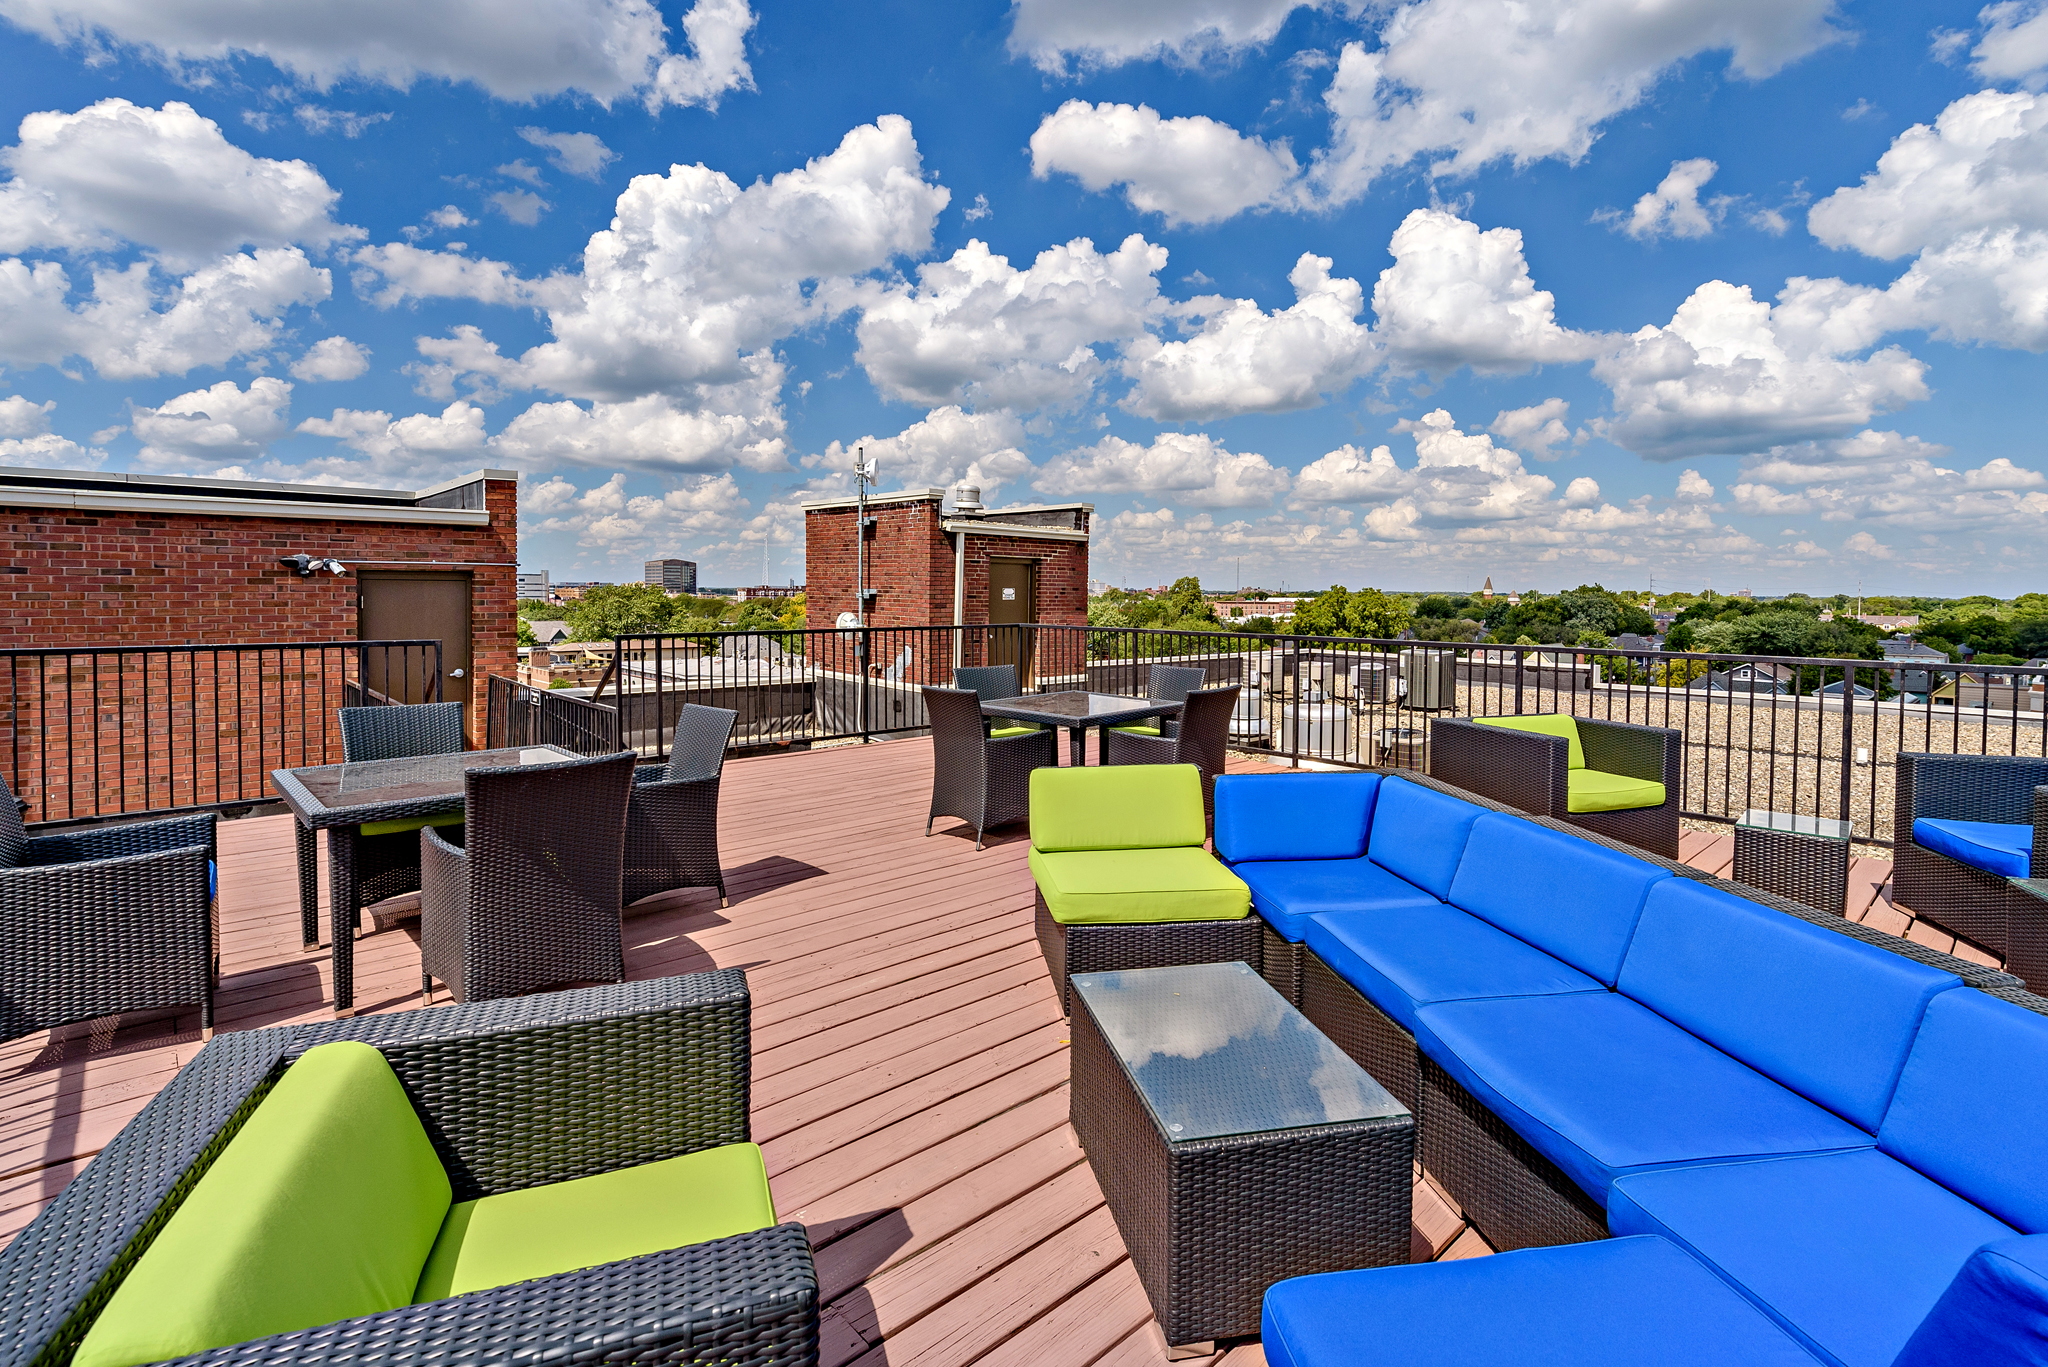 624 E Walnut Condo 46 Indpls IN 46204 Mill 9 Phase 1 - Mitch Rolsky with City Homes And Lifestyle (59)